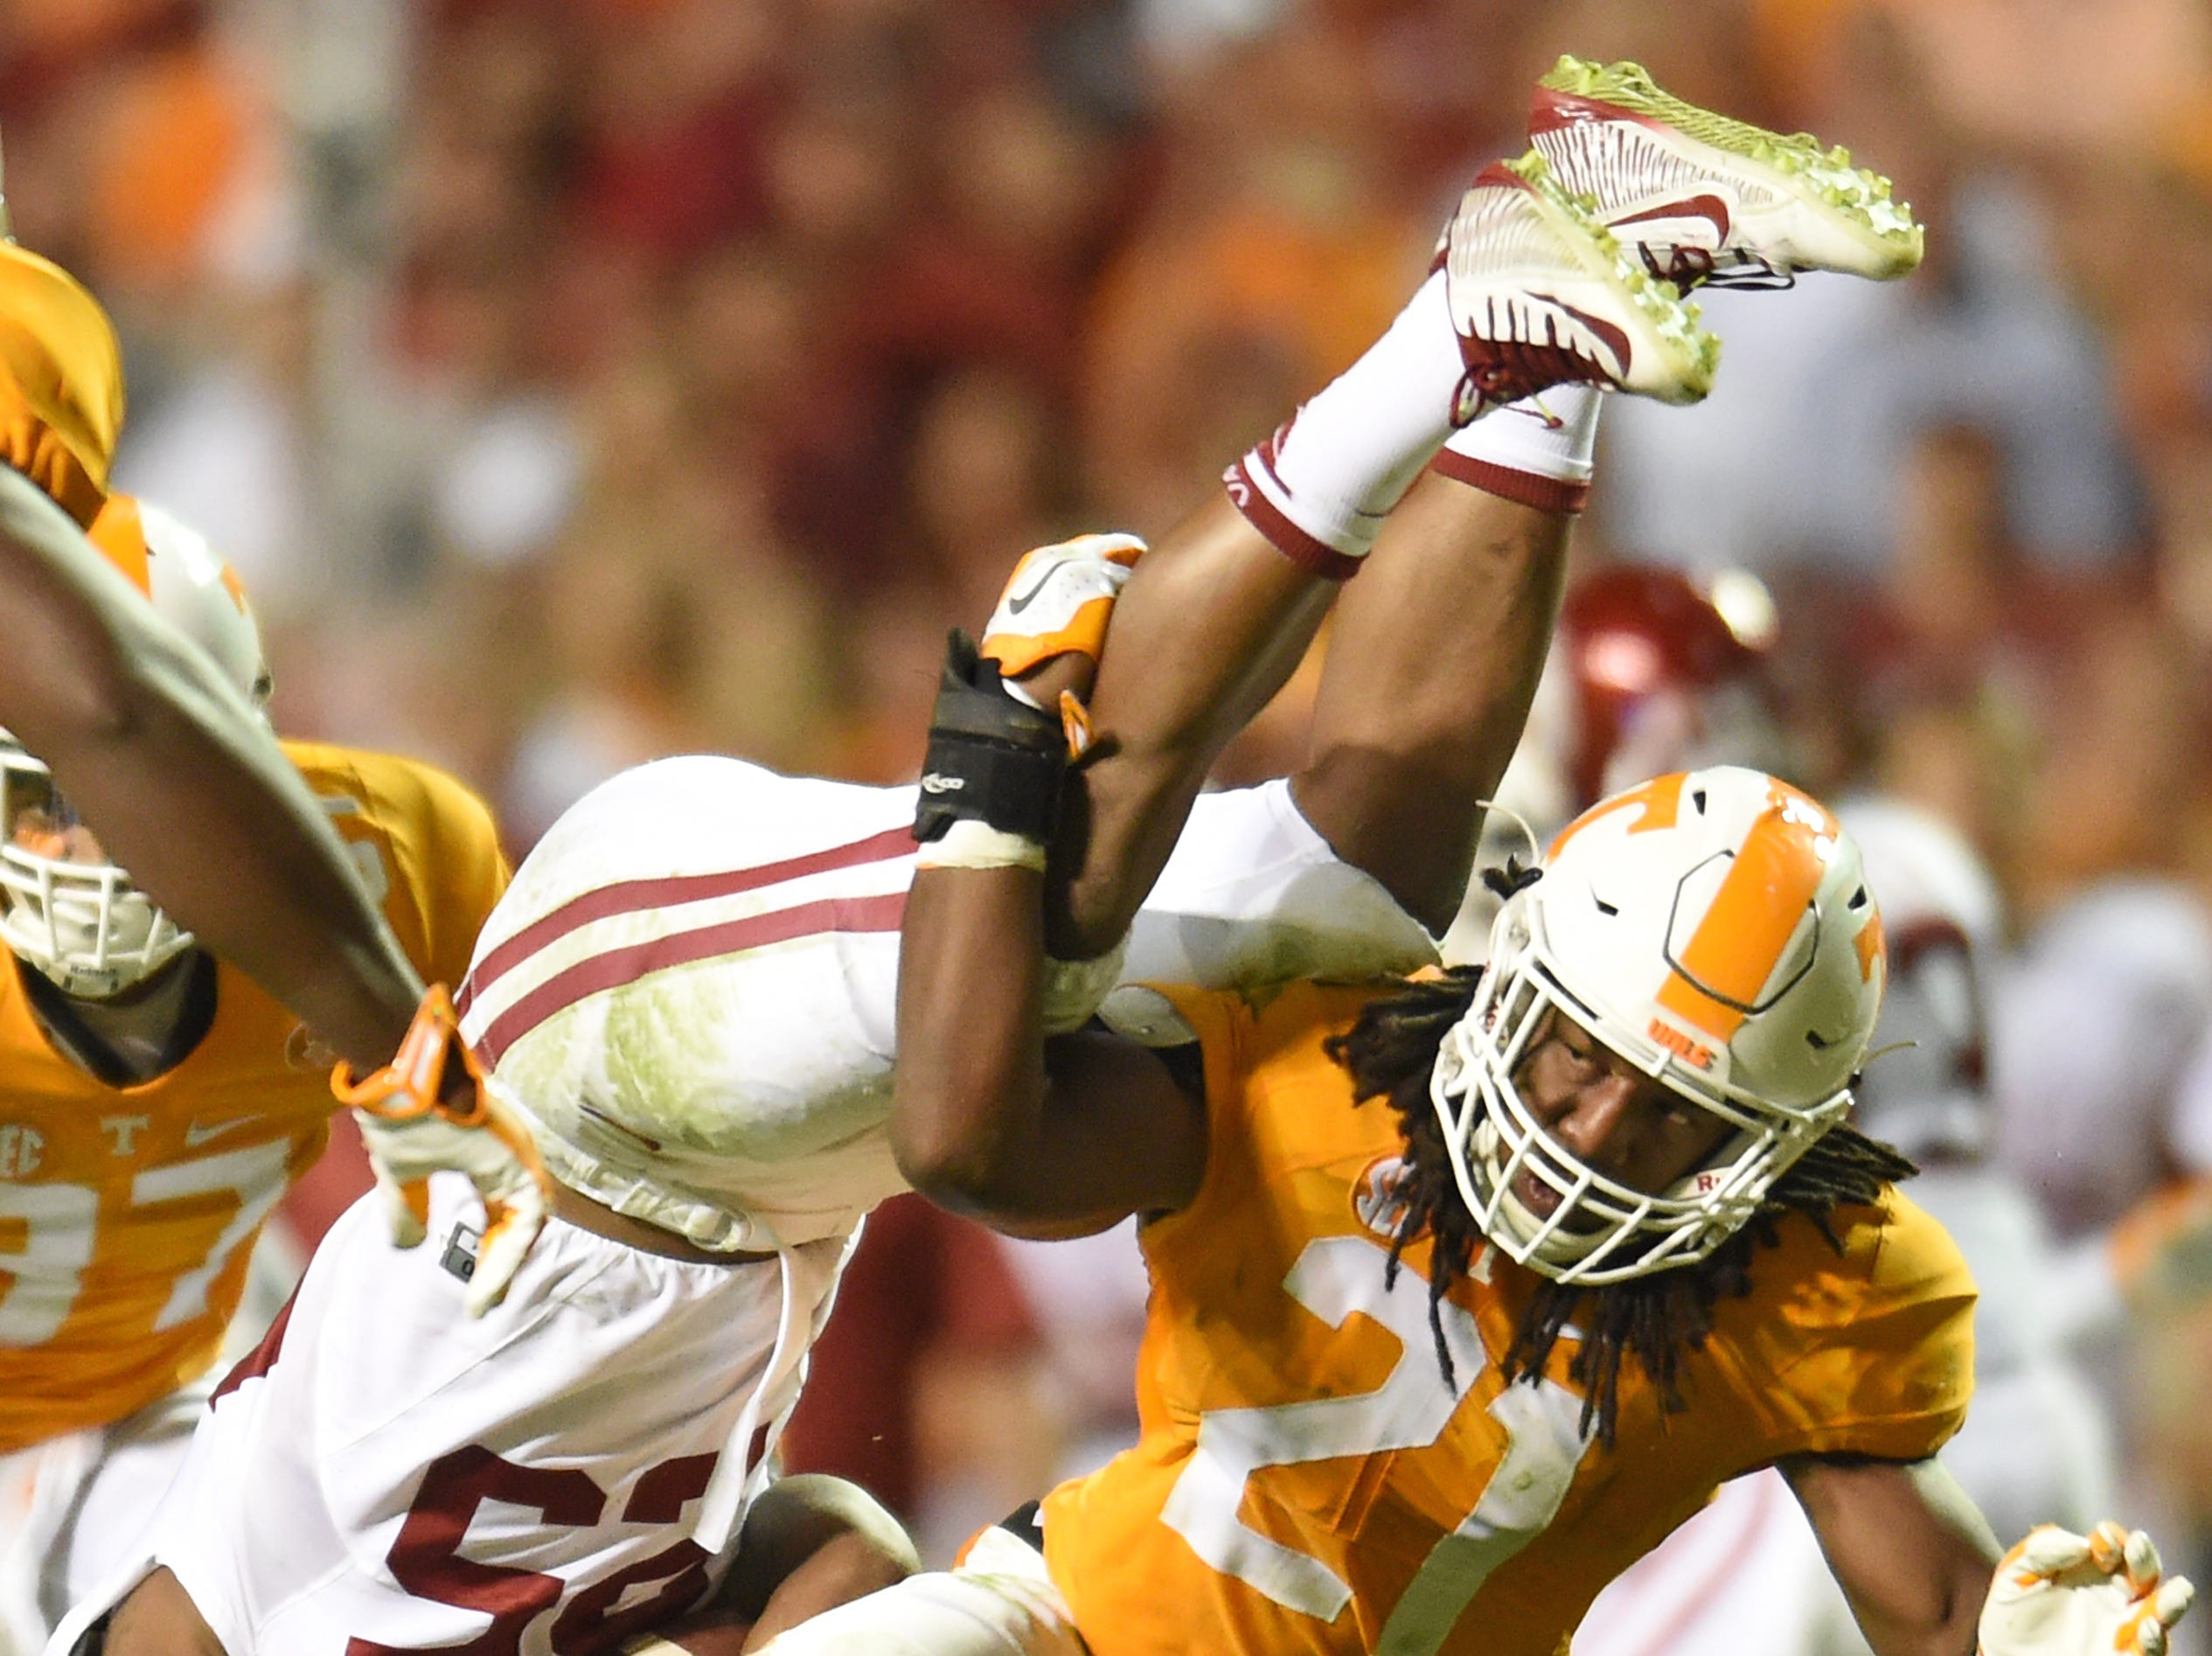 Tennessee linebacker Jalen Reeves-Maybin (21) upends Oklahoma running back Joe Mixon (25) during the second half at Neyland Stadium on Saturday, Sept. 12, 2015 in Knoxville, Tenn.